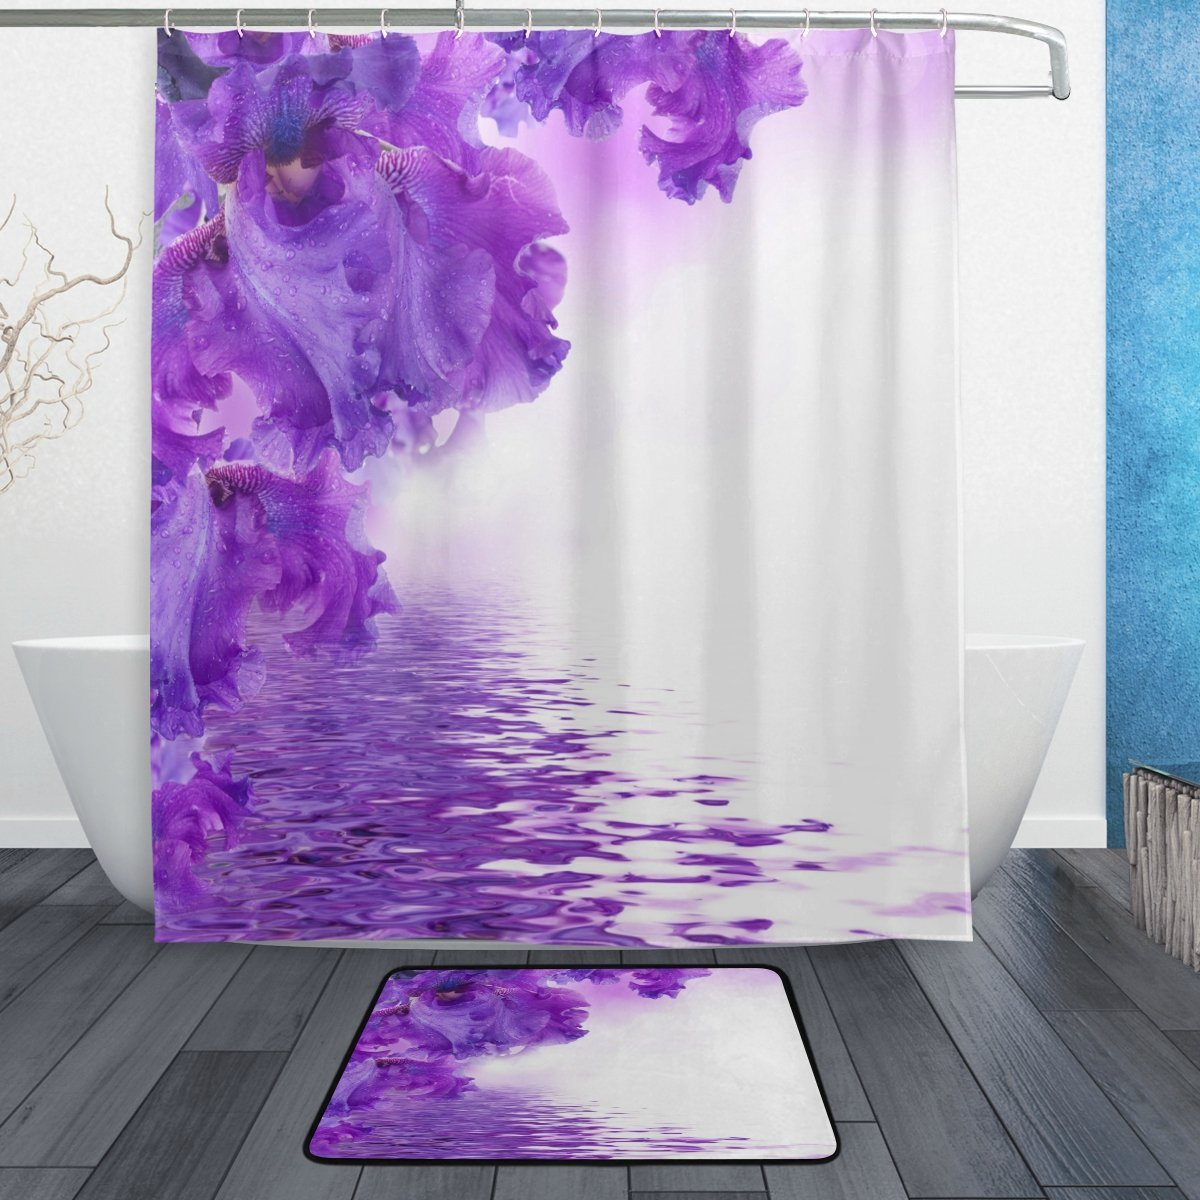 Purple Flower Shower Curtain and Mat Set, Floral Irises Waterproof Fabric Bathroom Curtain